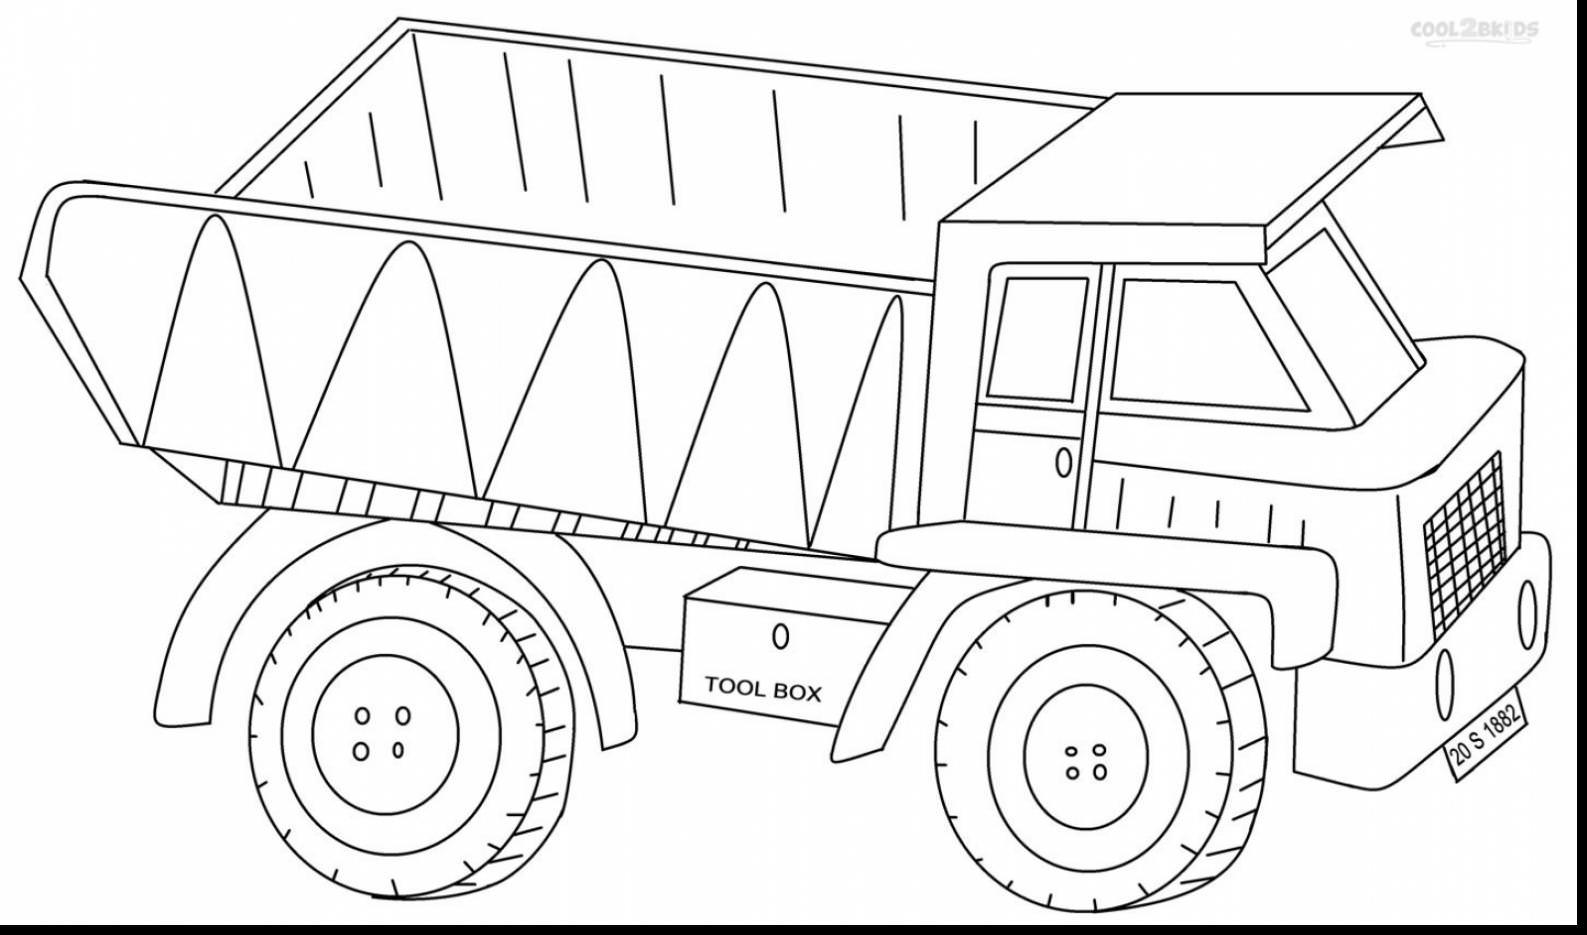 lifted truck coloring pages lifted truck coloring pages at getdrawings free download coloring lifted truck pages